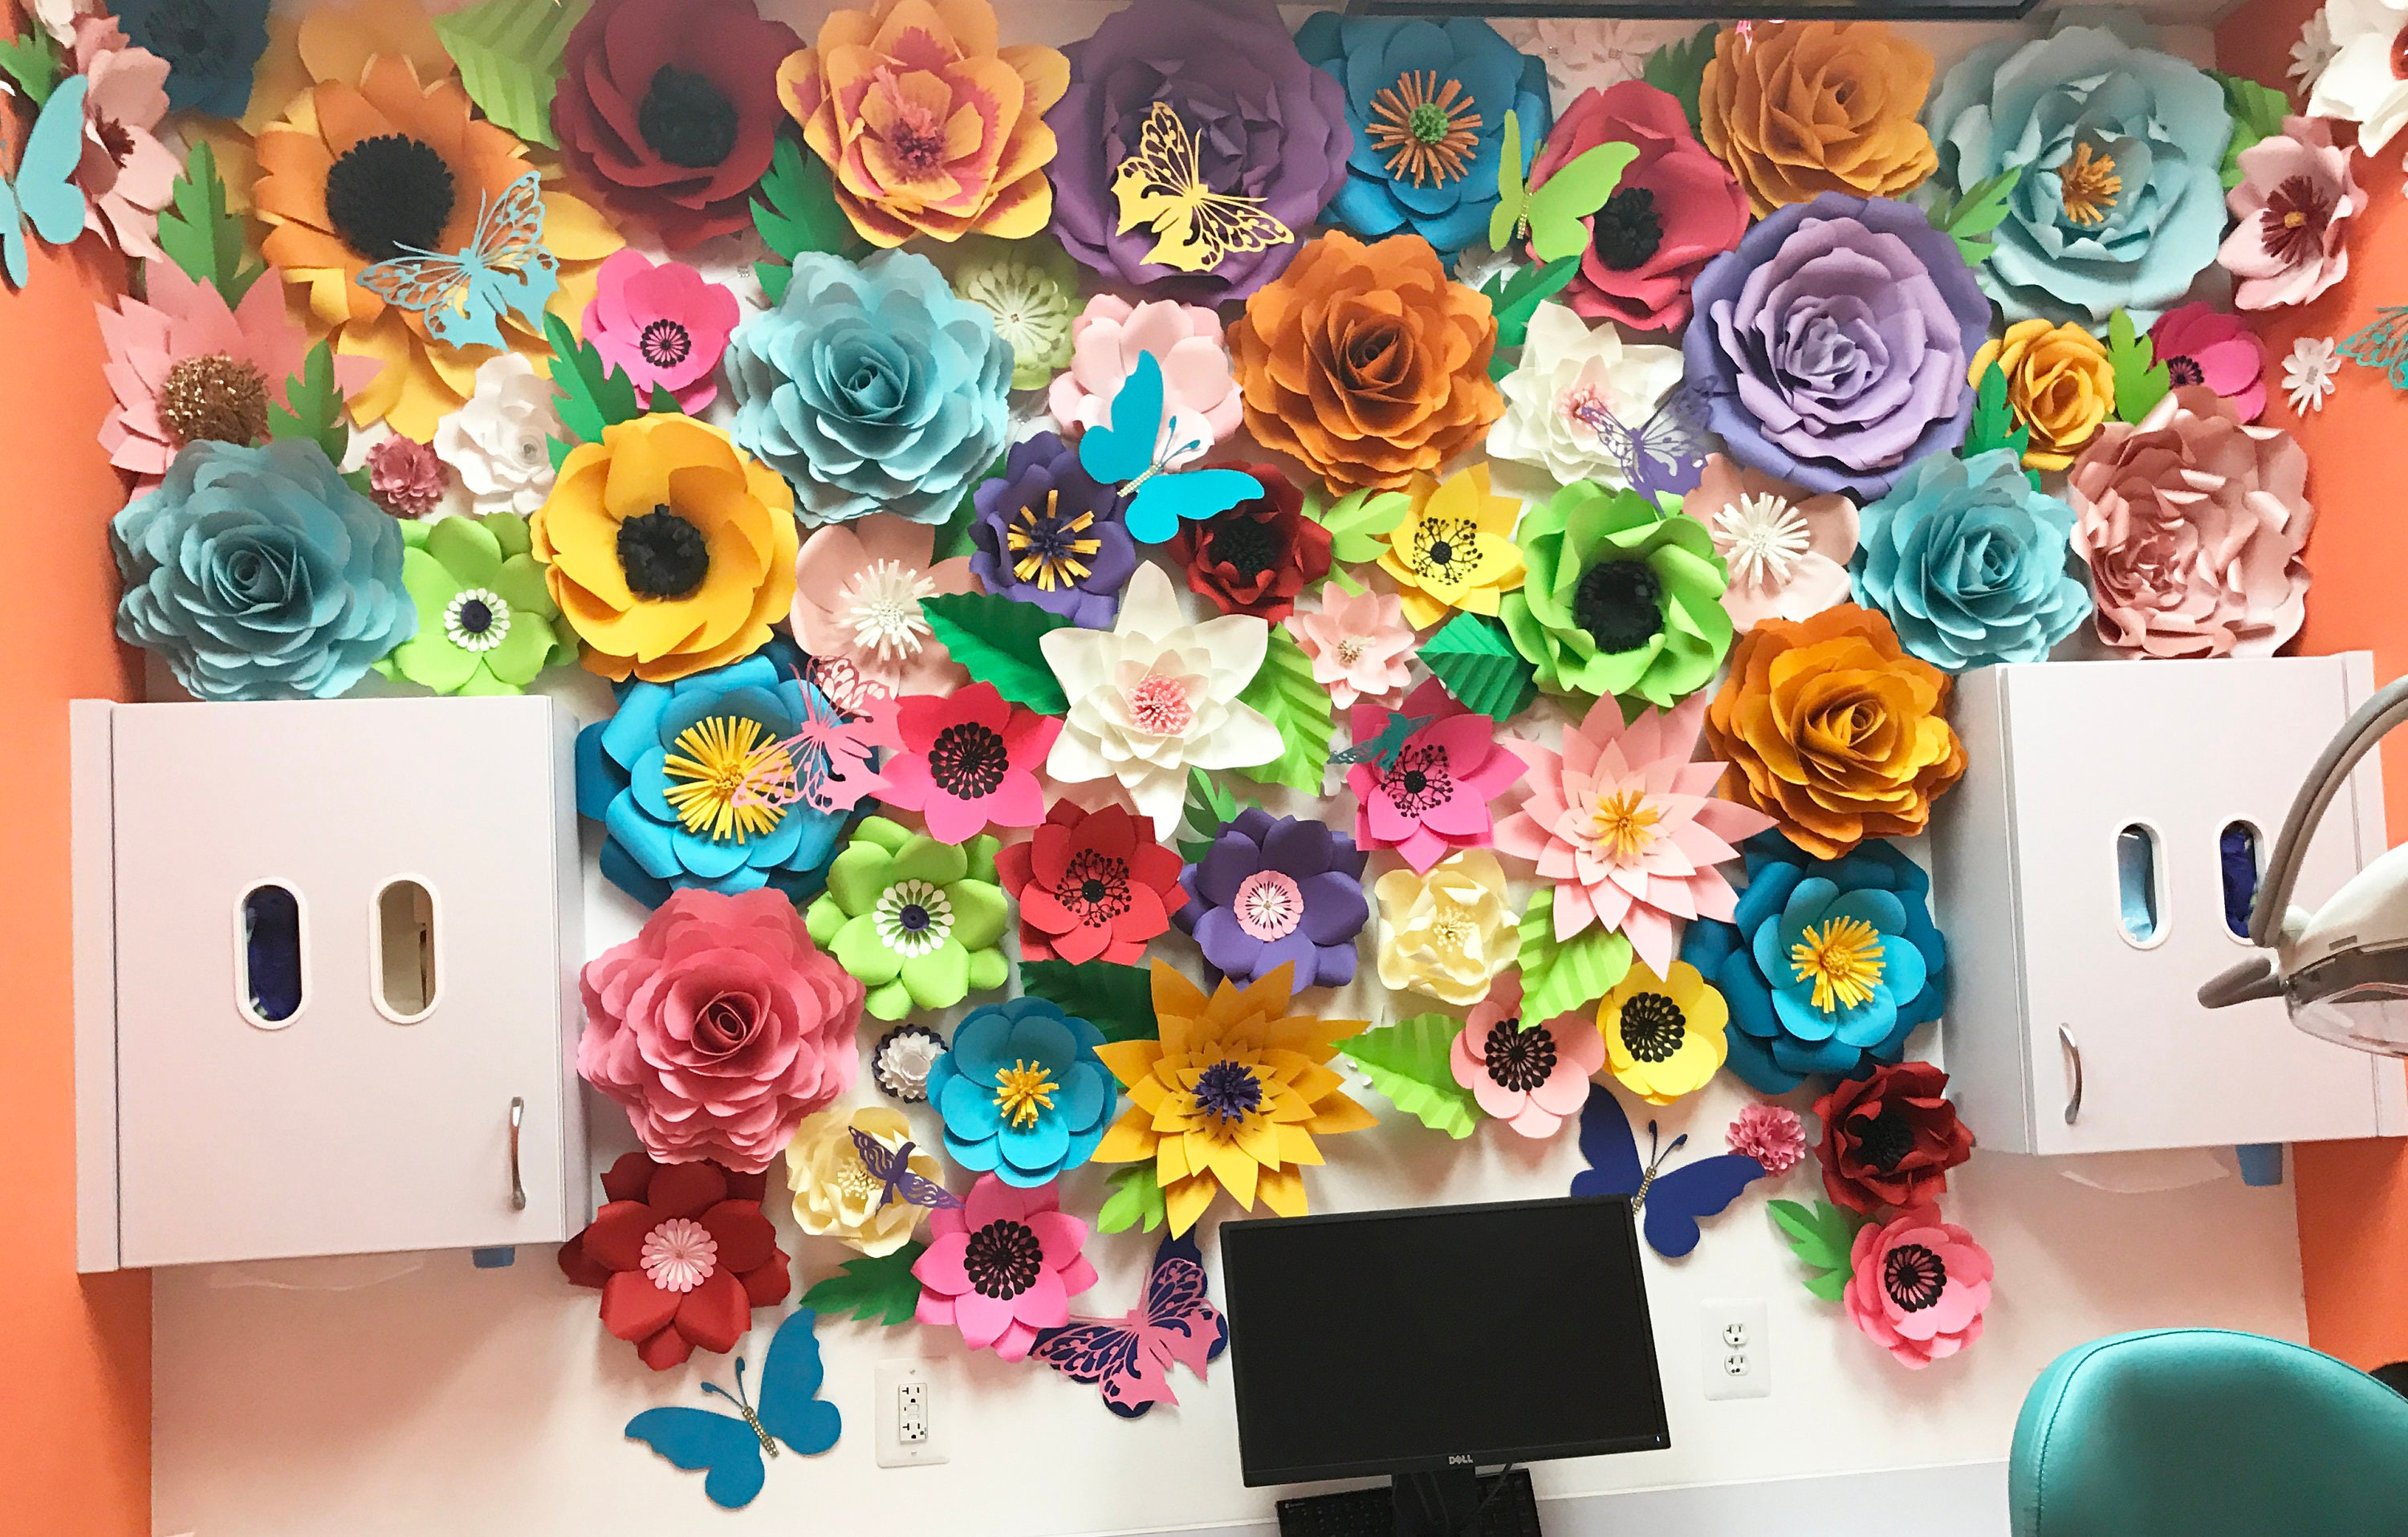 Colorful Flower Backdrop Giant Paper Flowers Backdrop Paper Flower Wall Children S Choice Paper Flowers For Kids